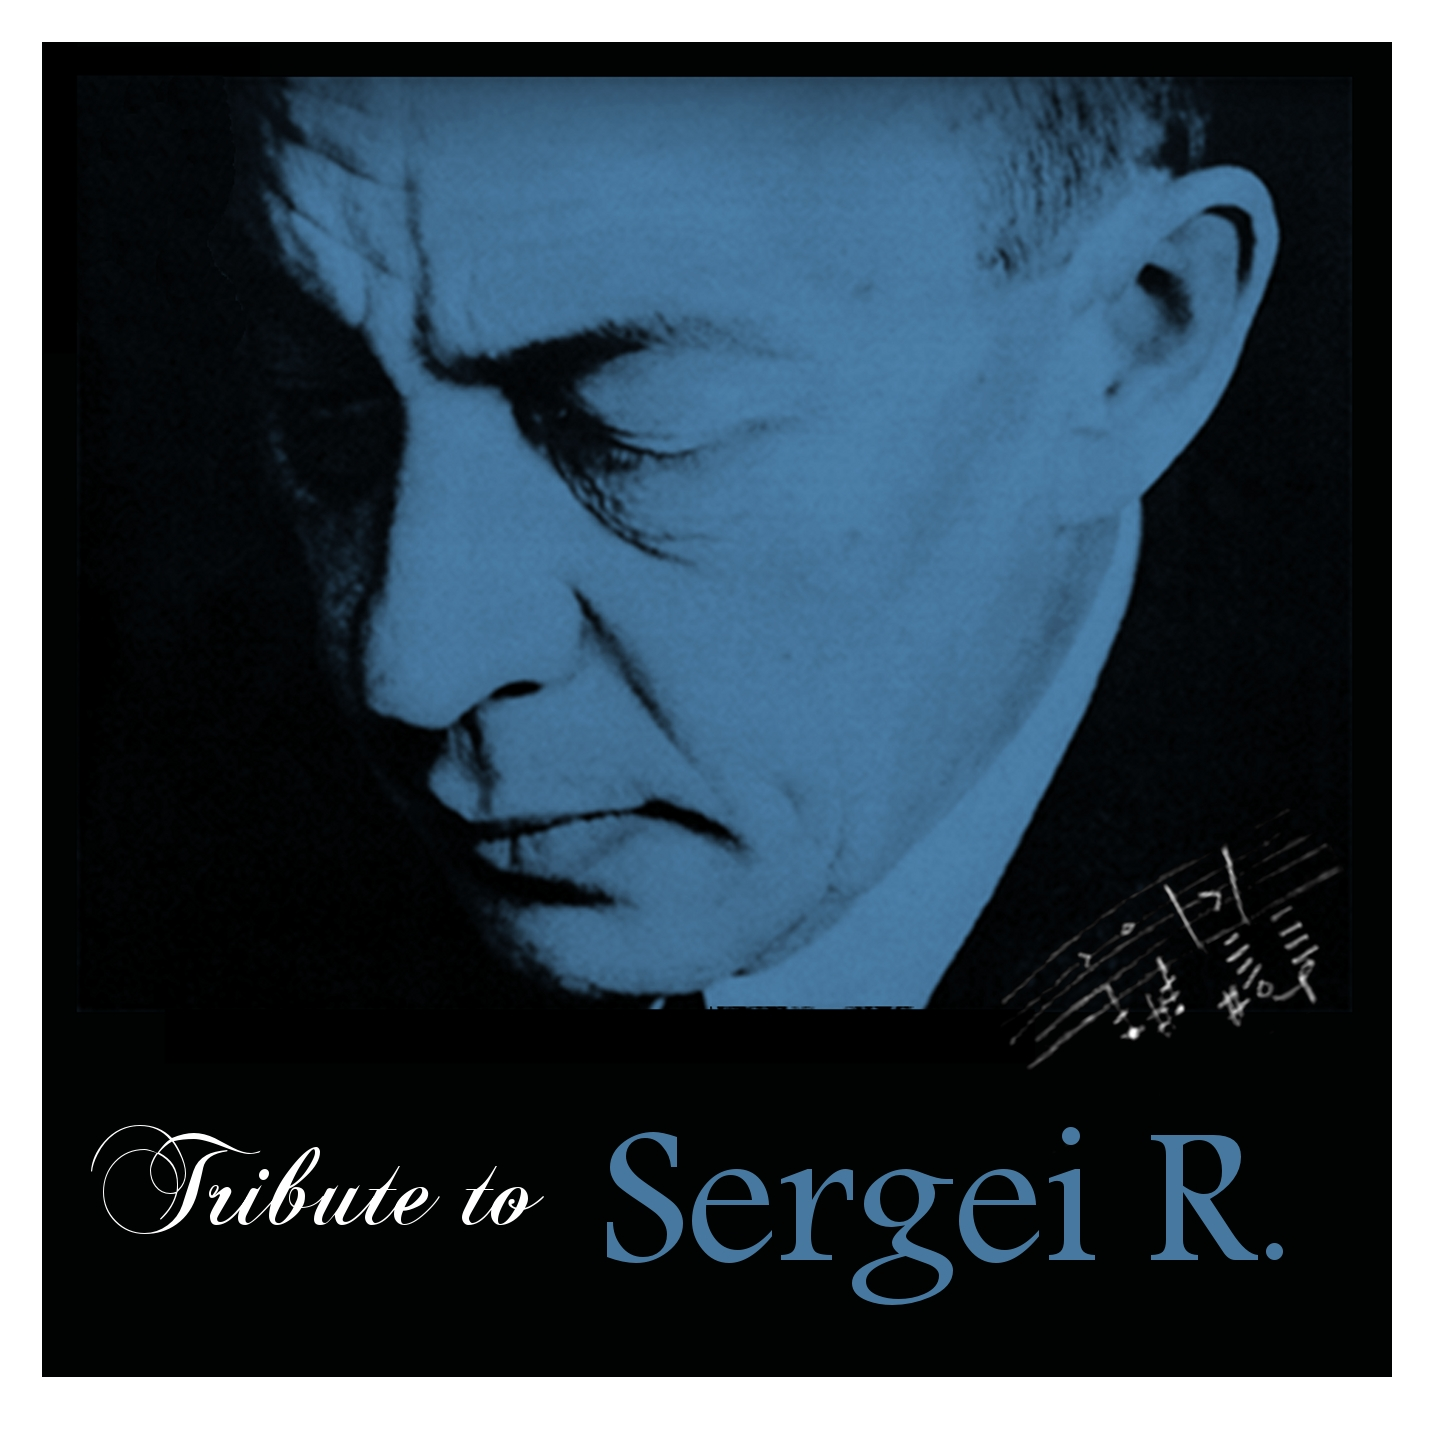 Tribute to Sergei R.